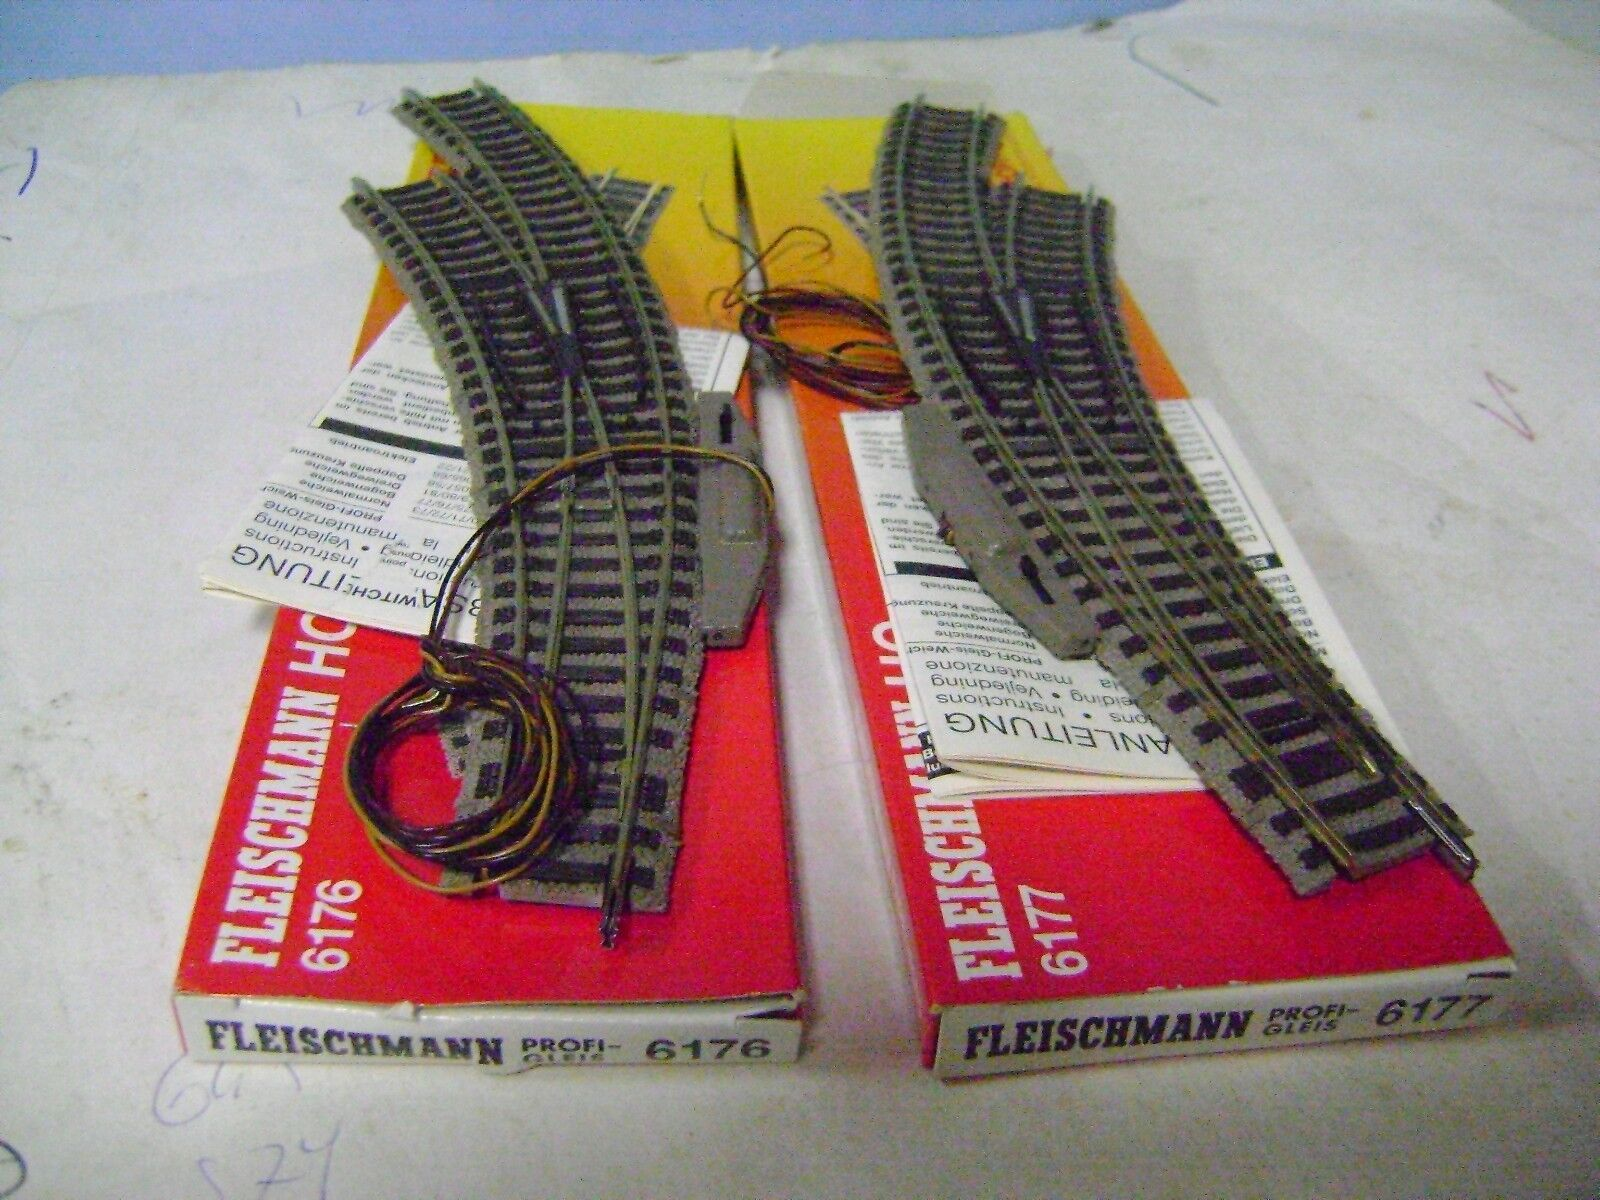 FLEISCHMANN SCAMBI 6176 6177 LEFT RIGHT Electric  HO LIKE NEW